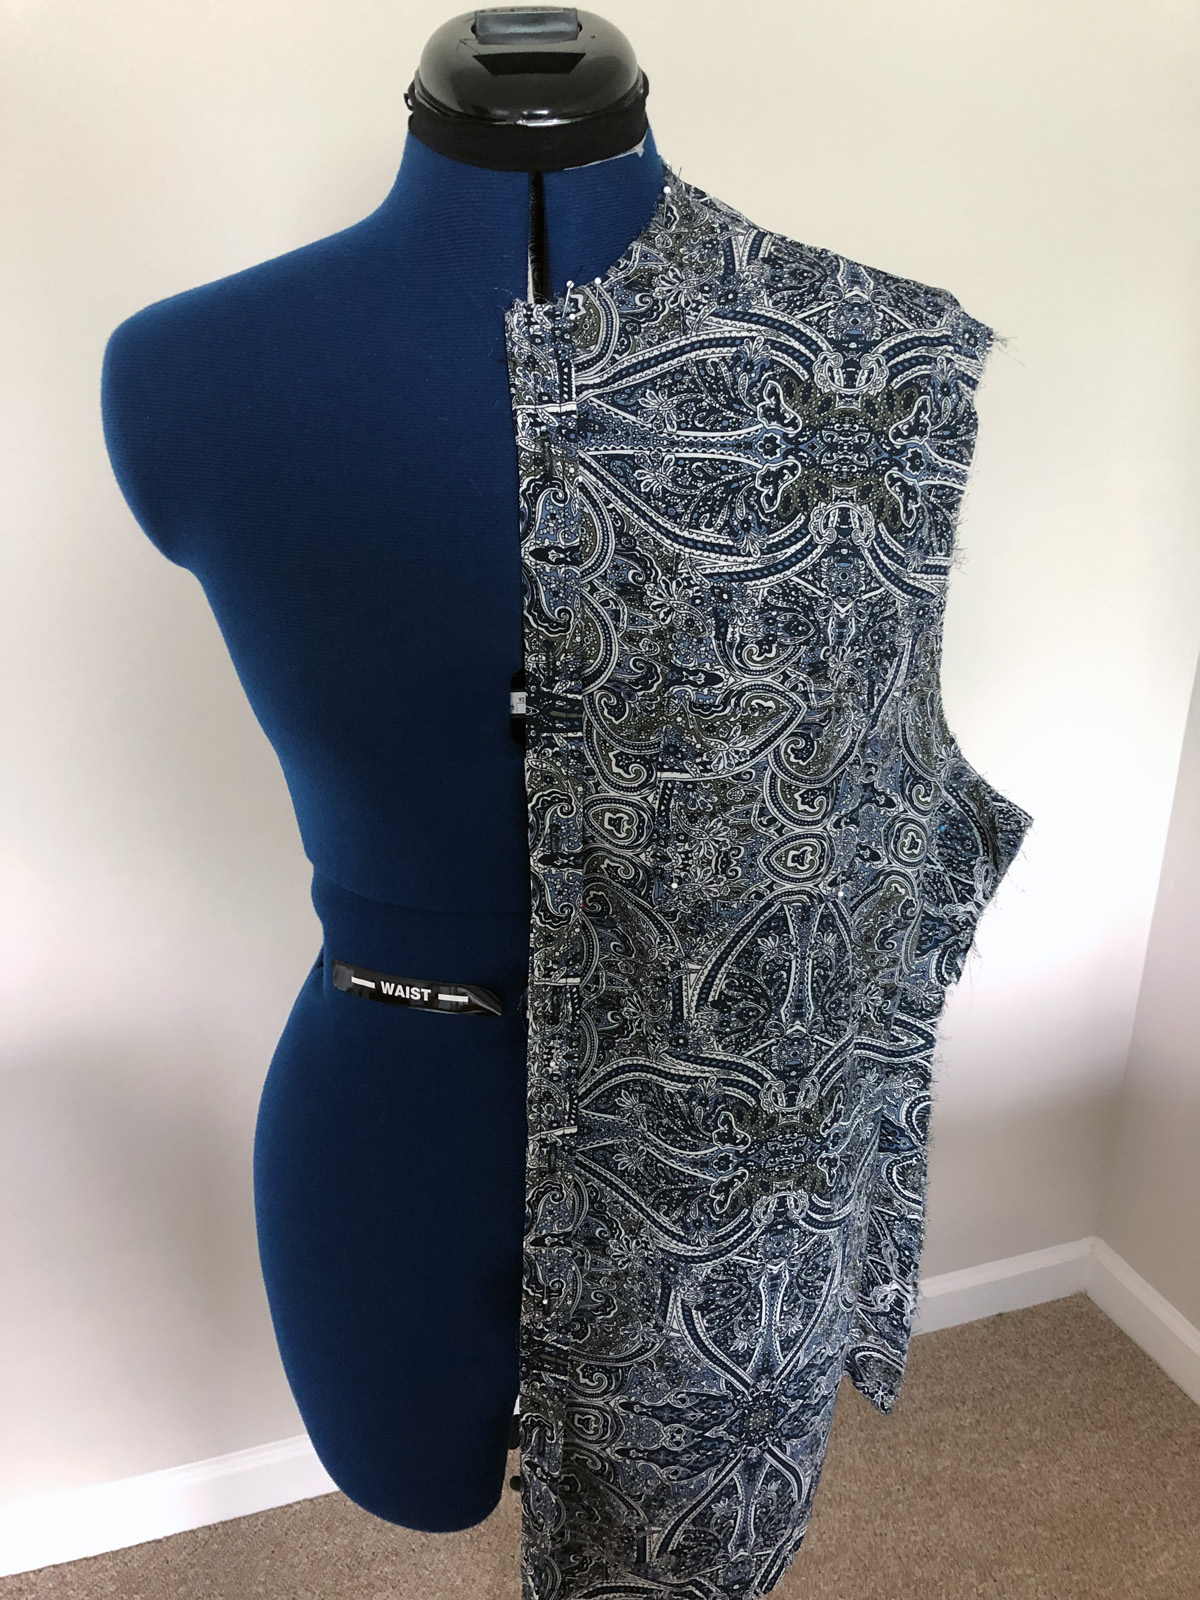 Half blouse front pinned on dress form